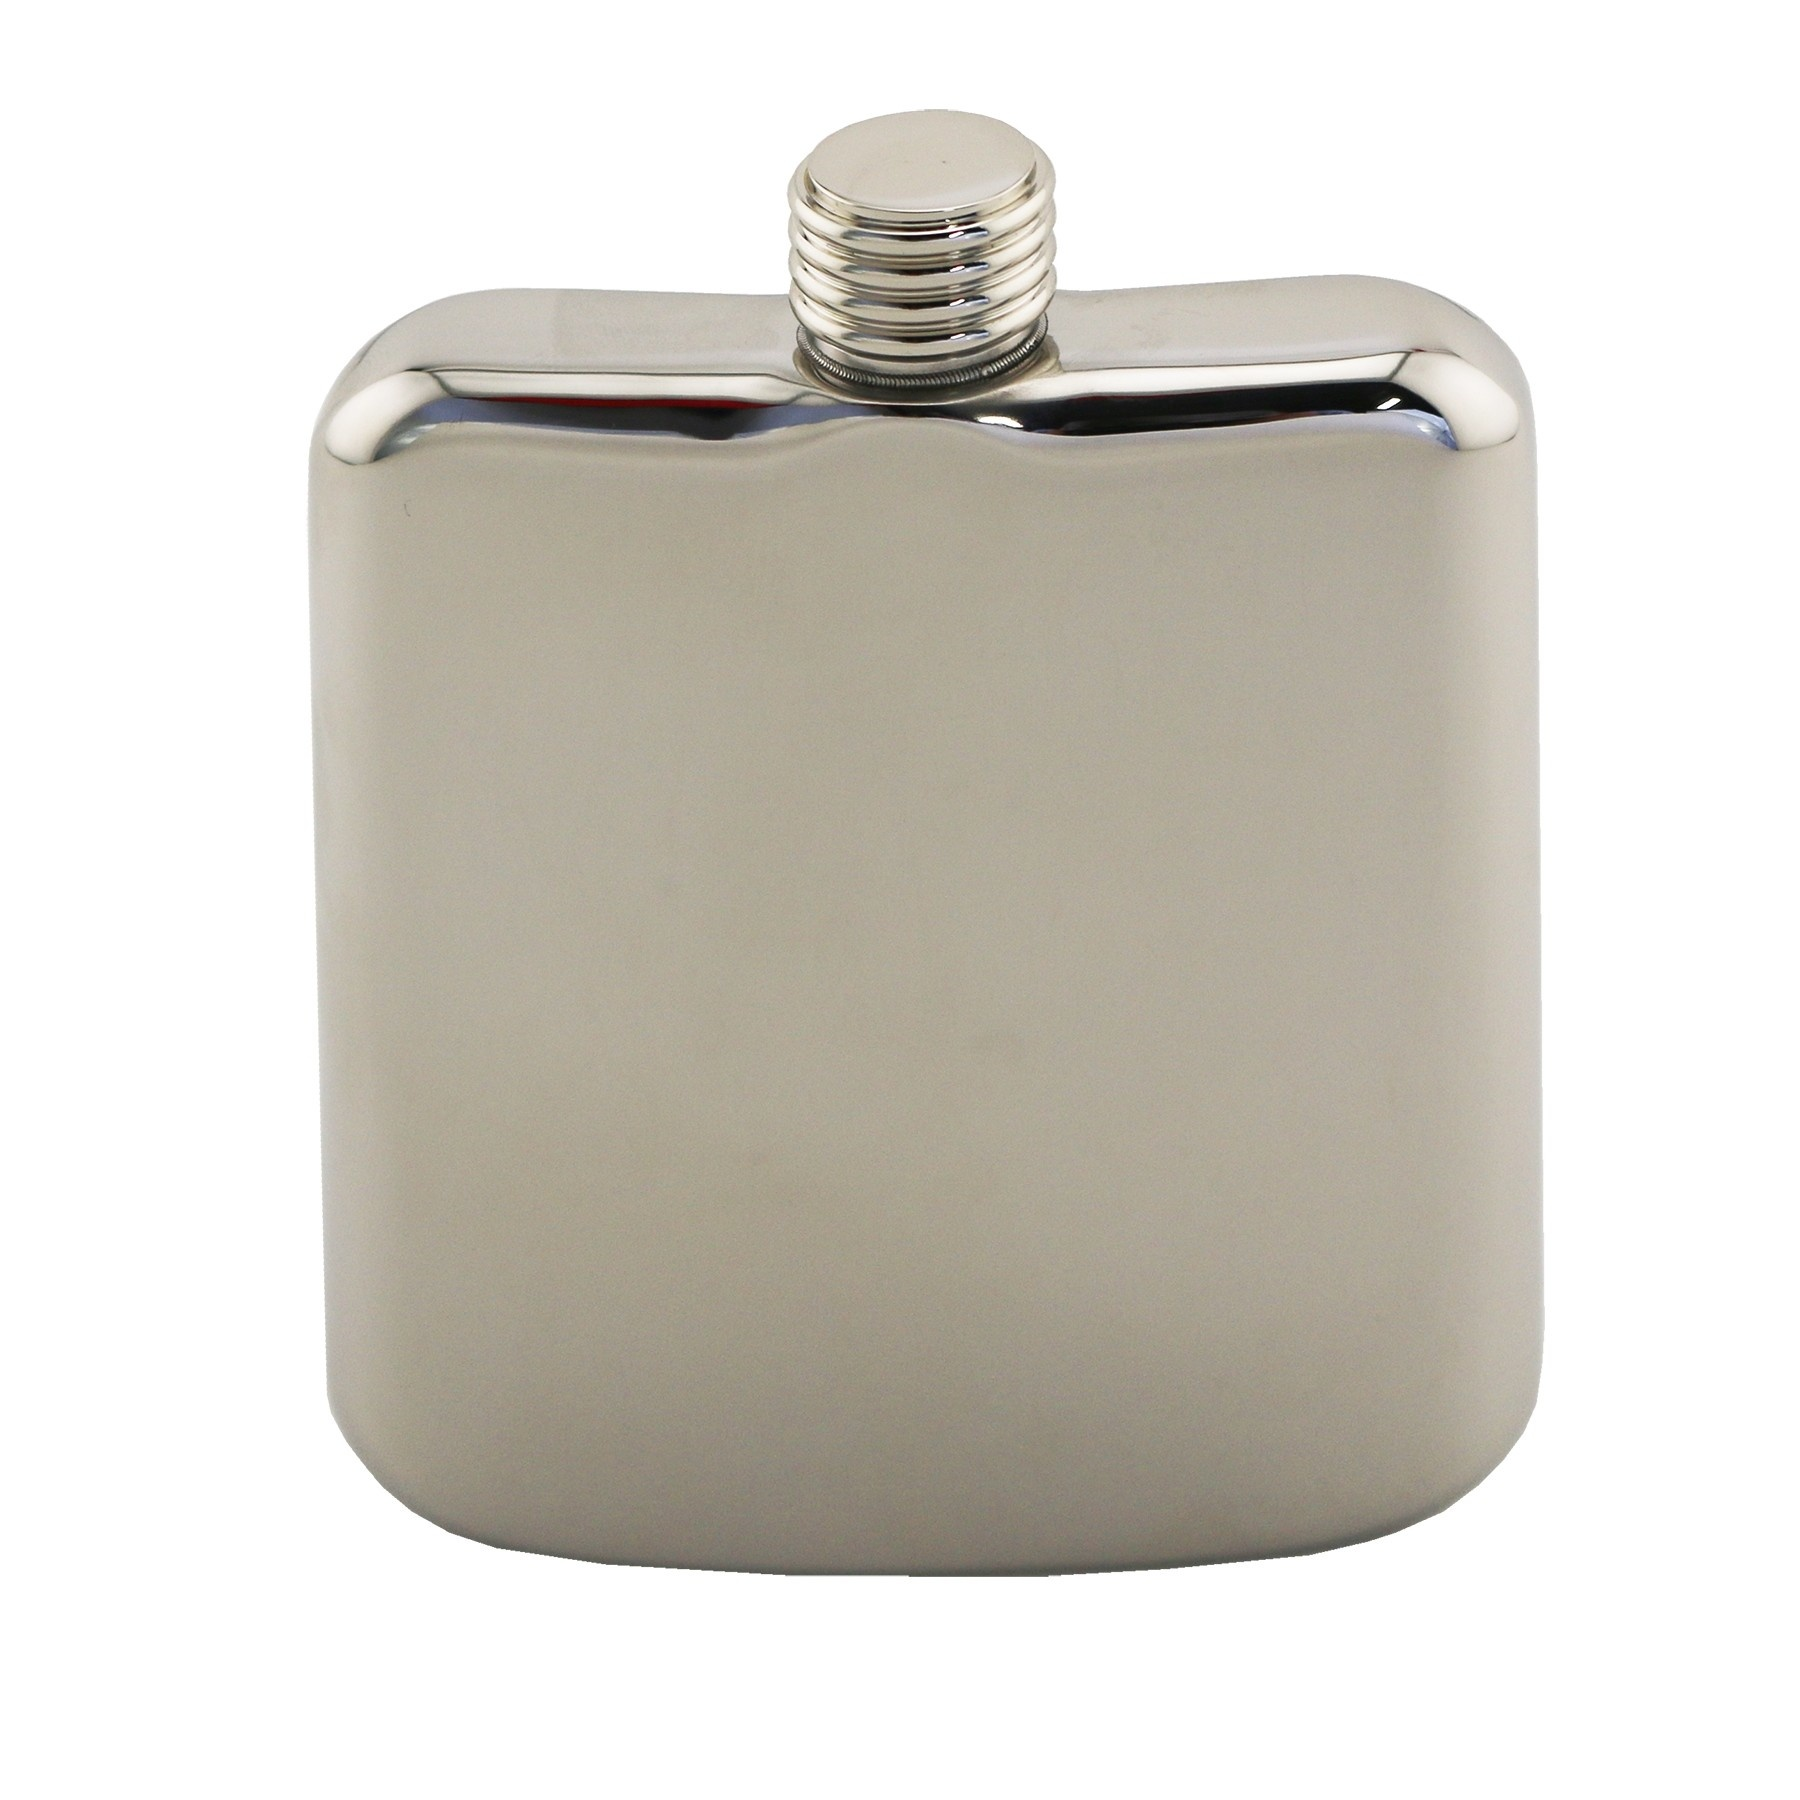 Sleekline Pocket Flask 6oz